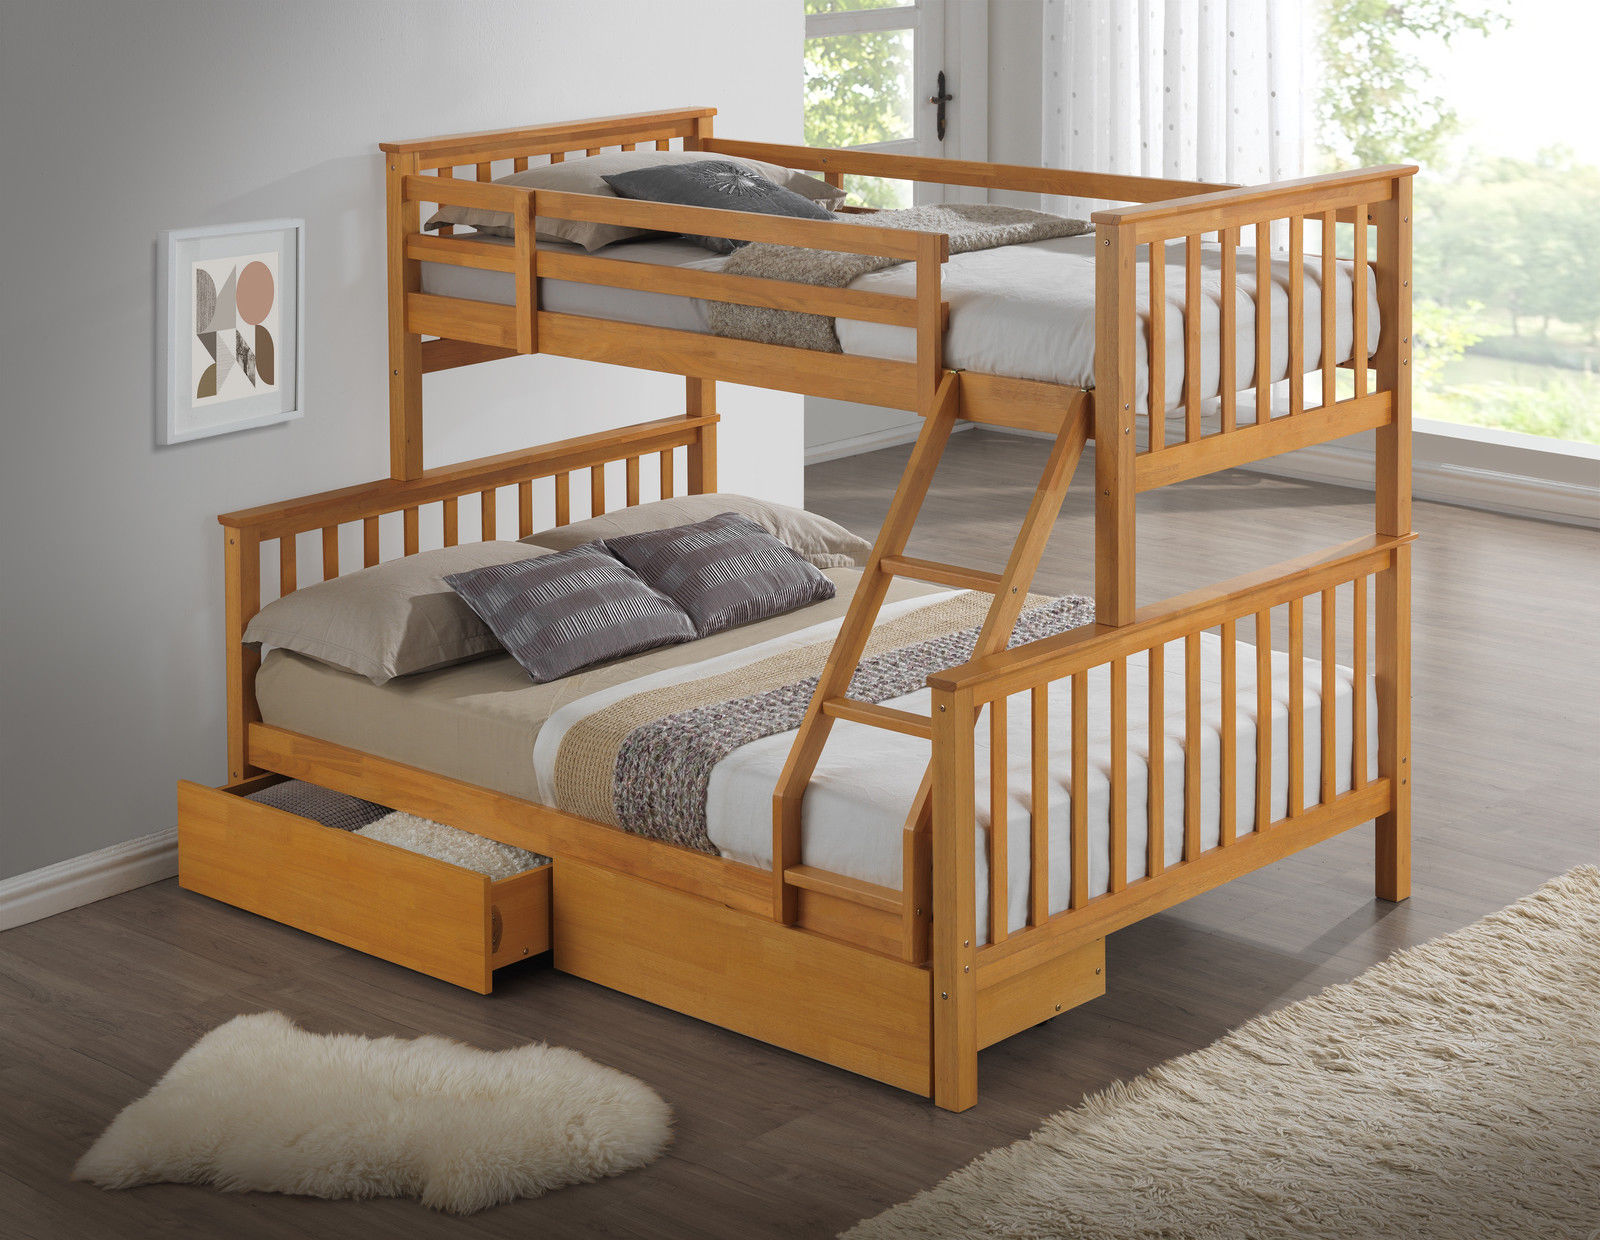 childrens bunk beds new beech1 31387